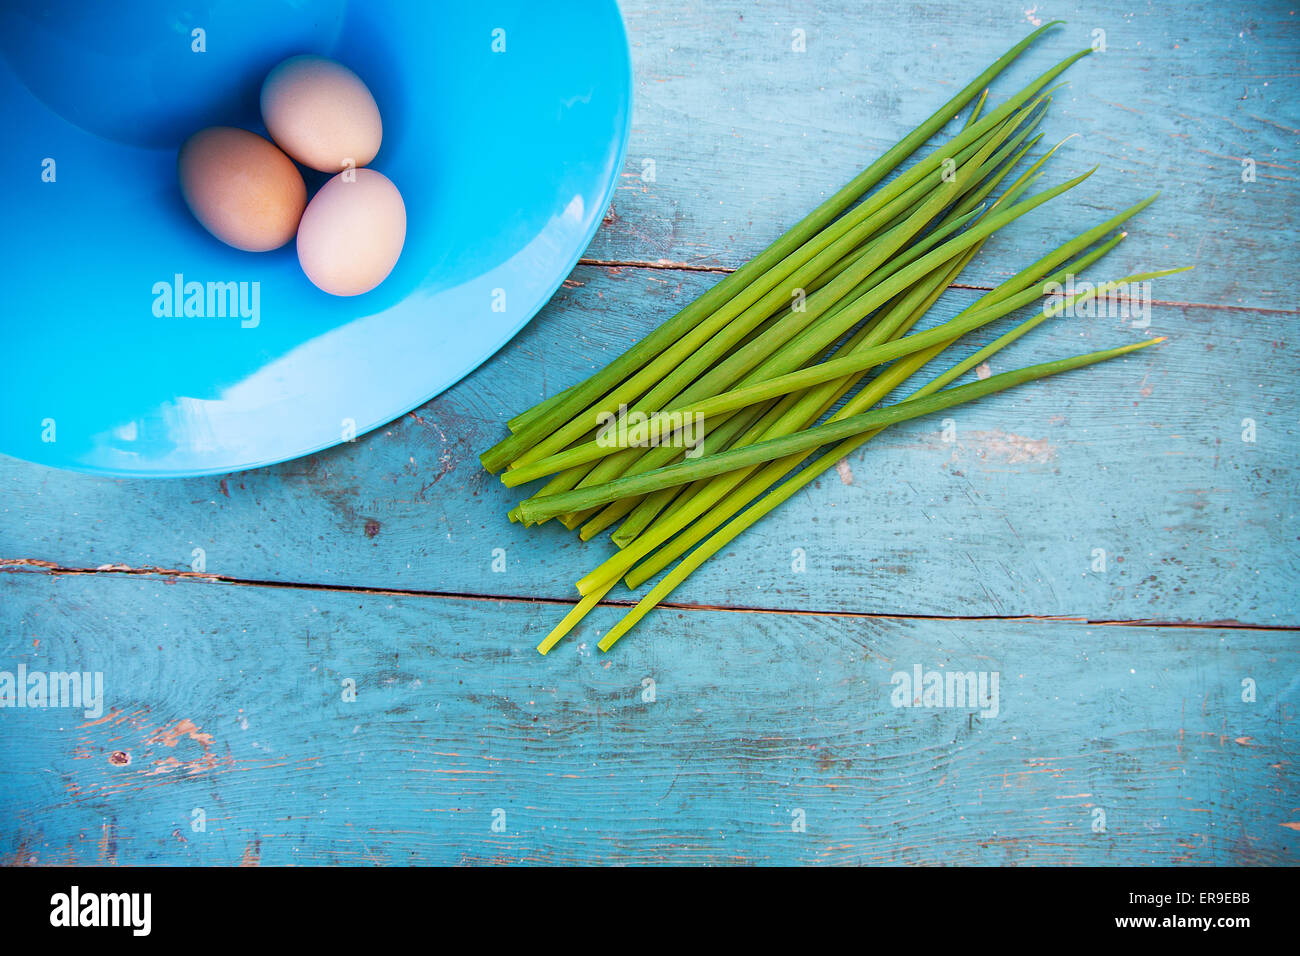 Natural white eggs in a blue bowl - Stock Image